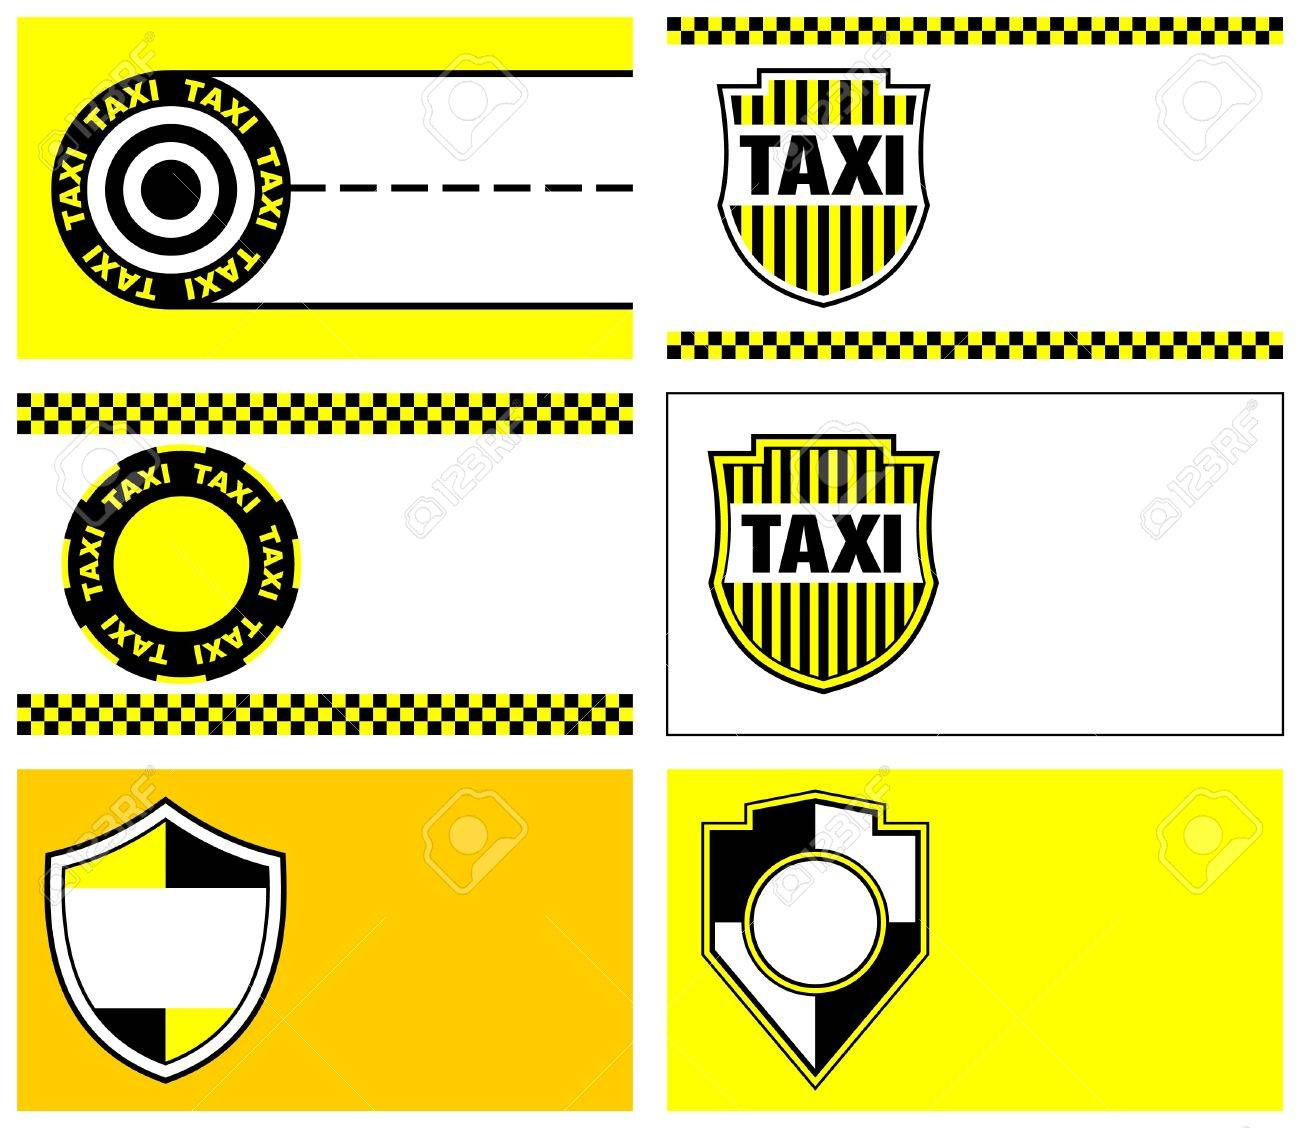 Taxi Business Cards 90 X 50 Mm